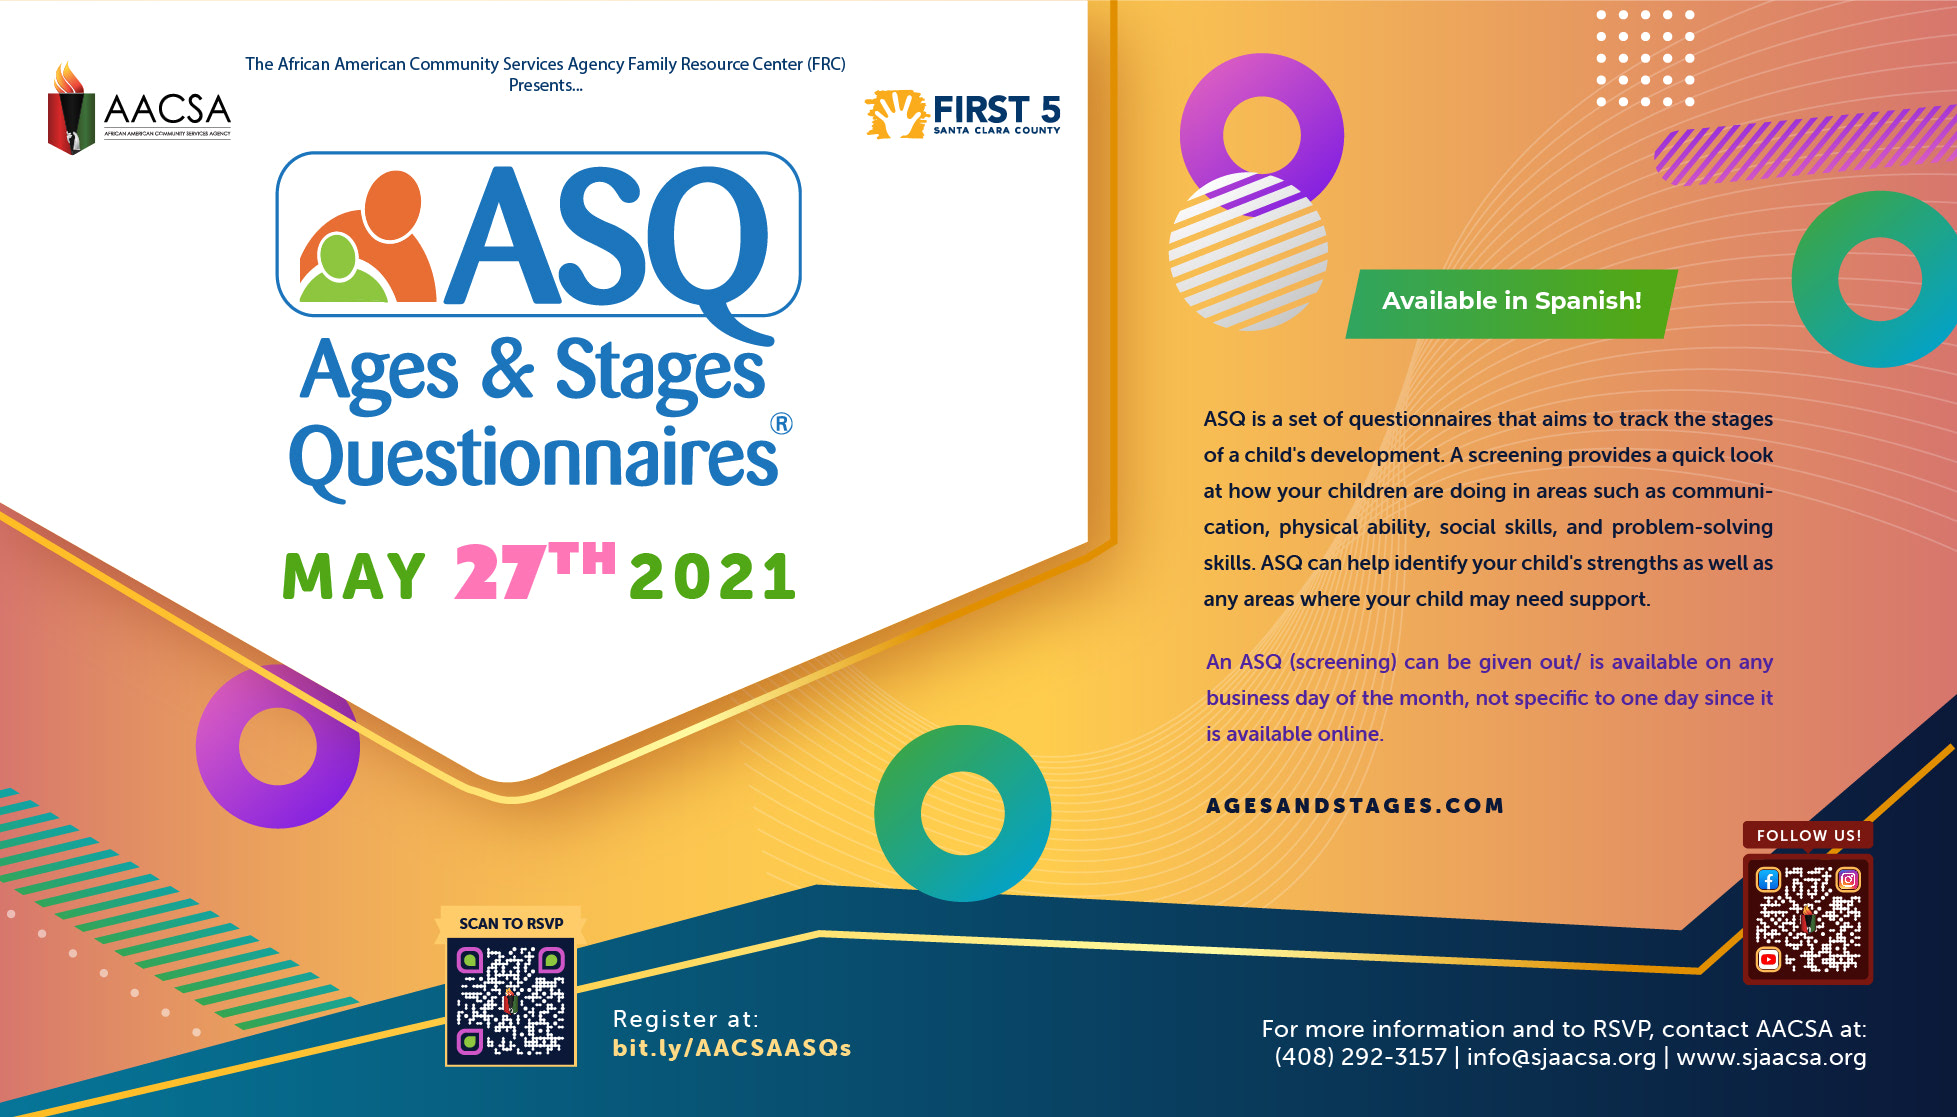 Banner for the AACSA Event: Ages & Stages Questionnaires. Event Date: May 27th, 2021. ASQ is a set of questionnaires that aims to track the stages of a child's development. A screening provides a quick look at how your children are doing in areas such as communication, physical ability, social skills, and problem-solving skills. ASQ can help identify your child's strengths as well as any areas where your child may need support. Ask ASQ screening can be given out/is available on any business day of the month, not specific to the one day since it is available online at agesandstages.com. Available in Spanish. To register, please visit bit.ly/AACSAASQs.